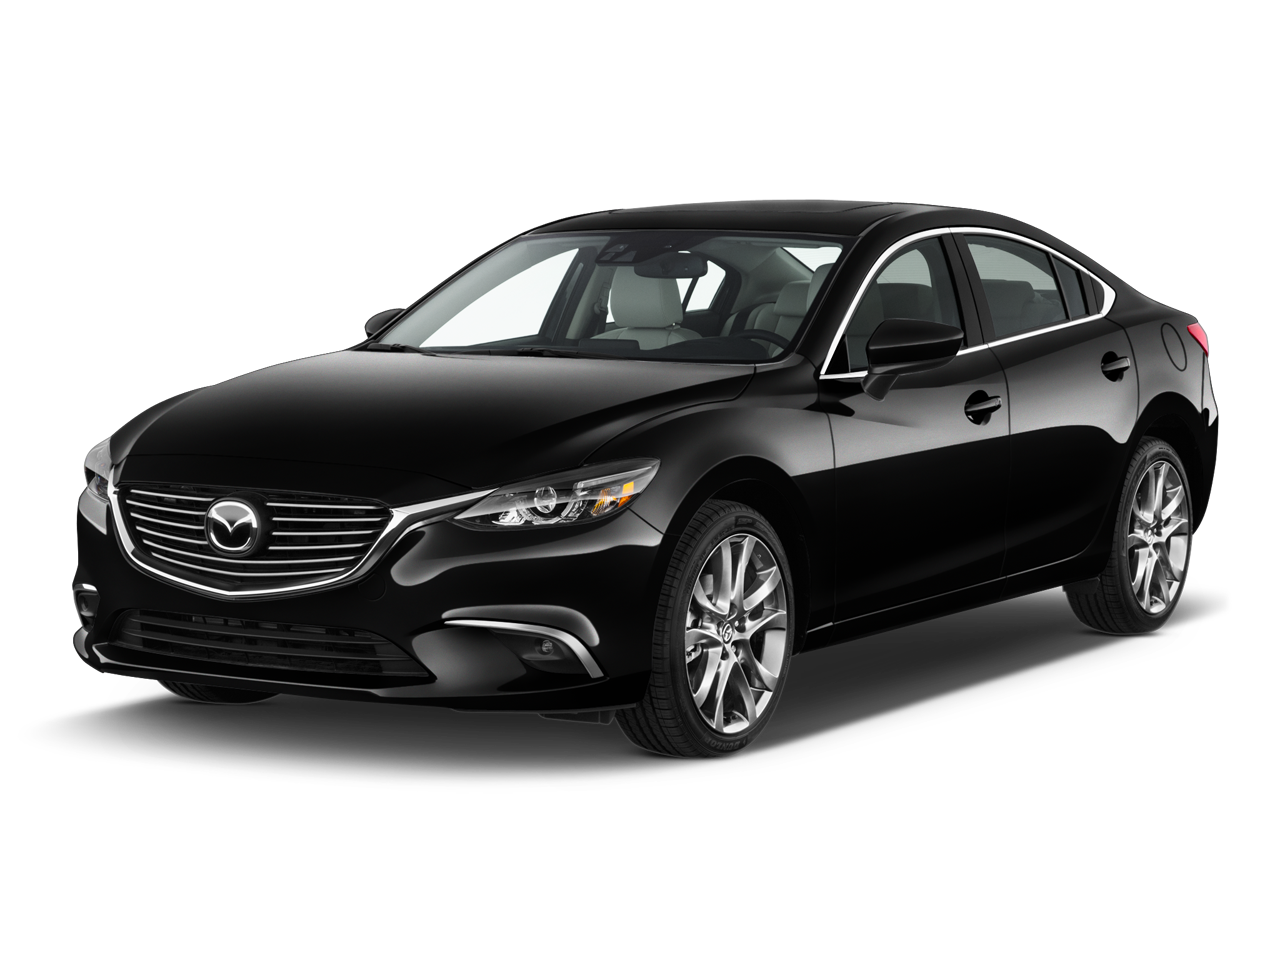 new 2017 mazda mazda6 grand touring near augusta ga gerald jones mazda. Black Bedroom Furniture Sets. Home Design Ideas